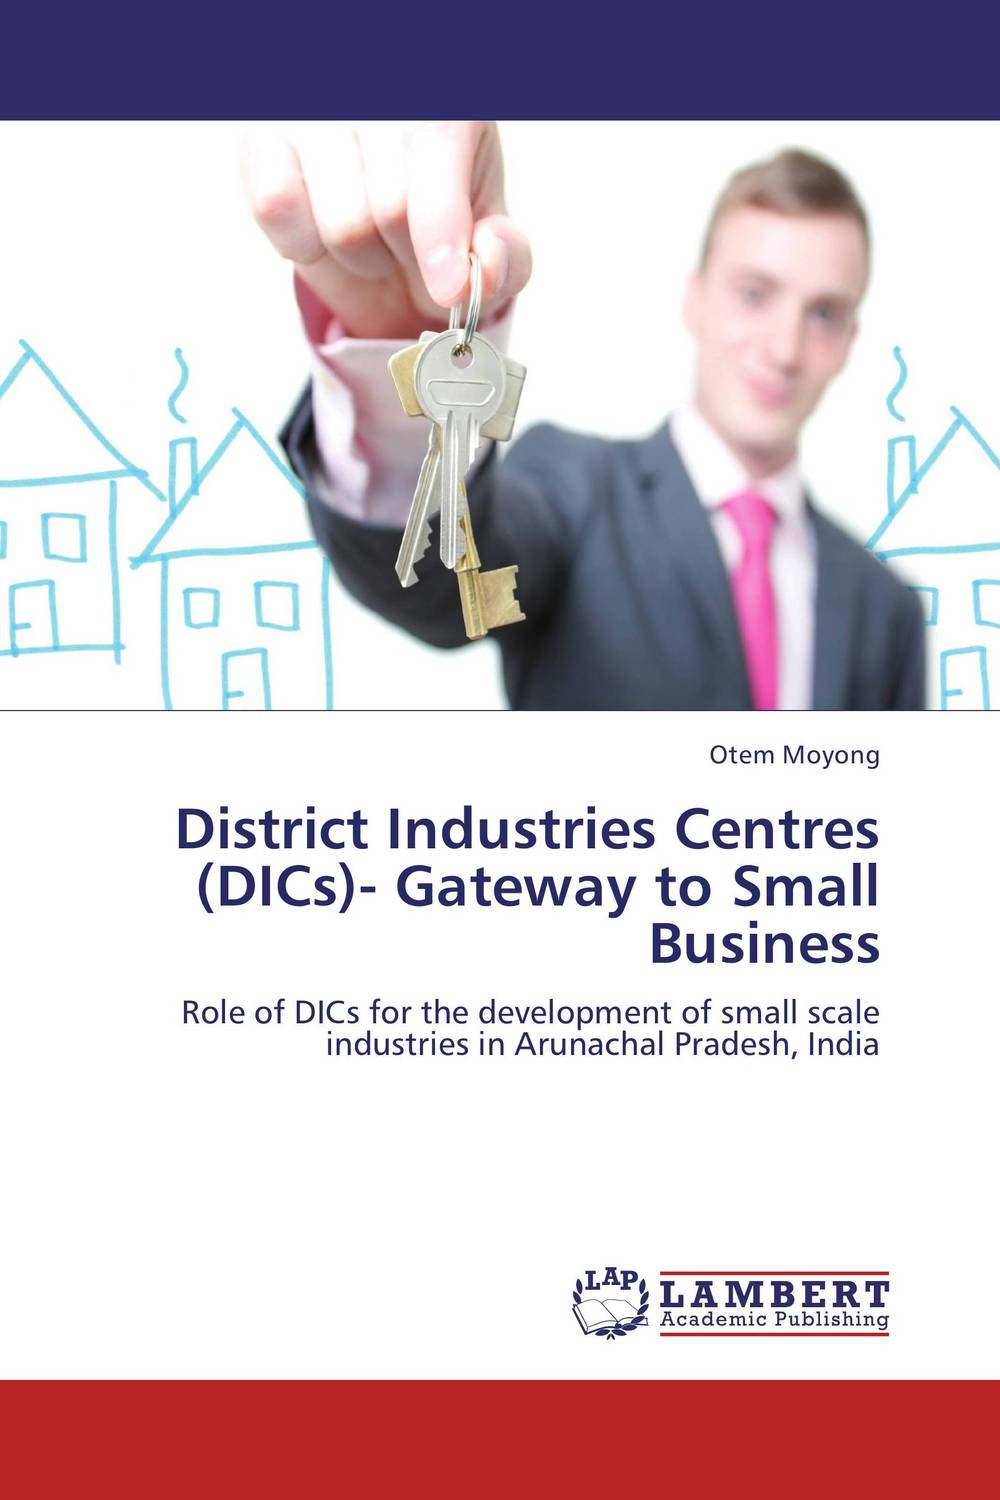 District Industries Centres (DICs)- Gateway to Small Business